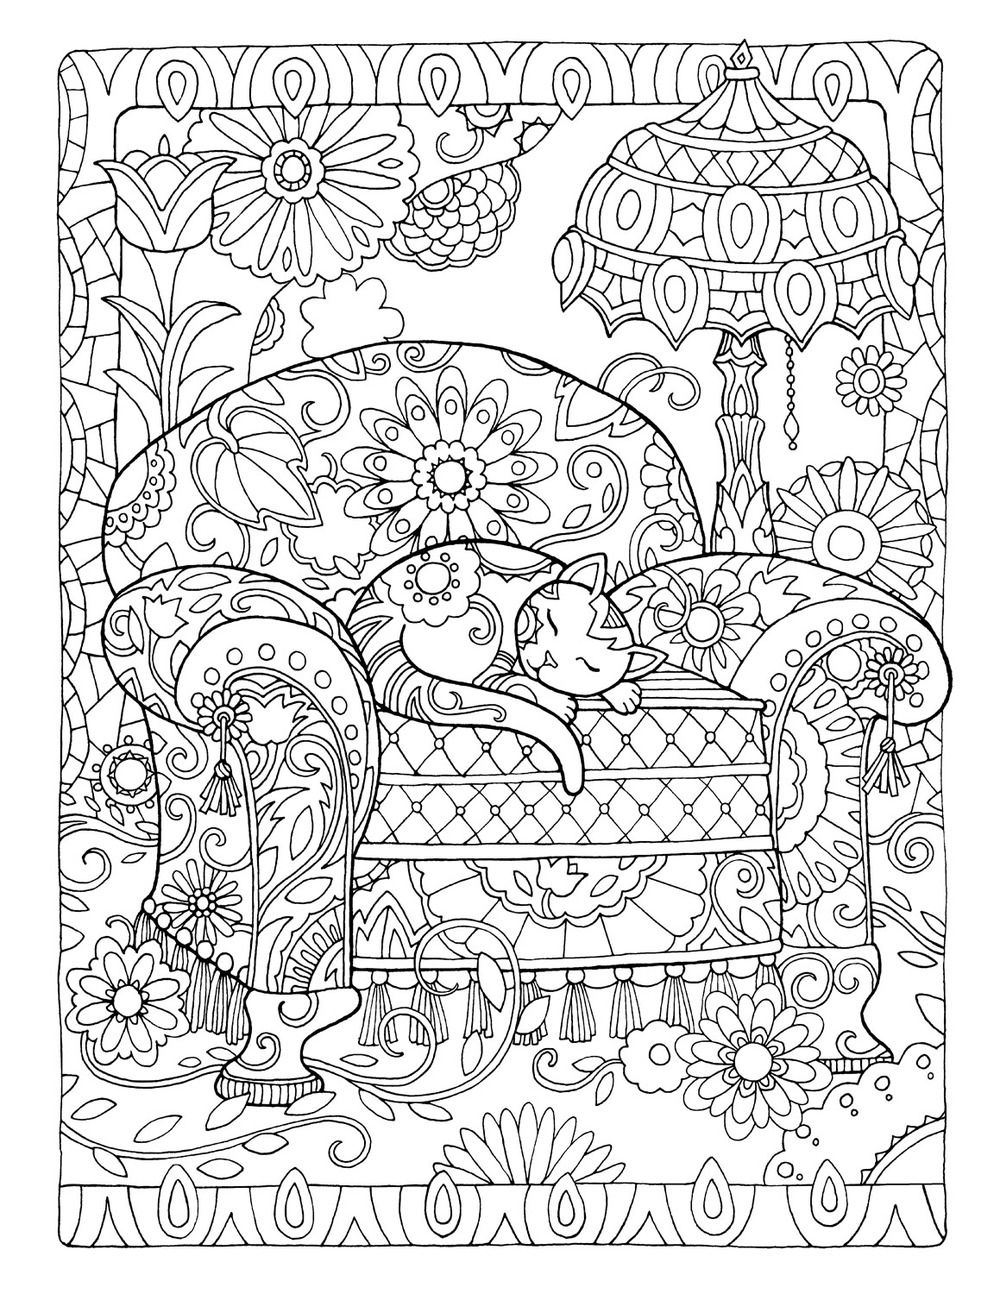 Cat on chair colouring pages pinterest coloring pages